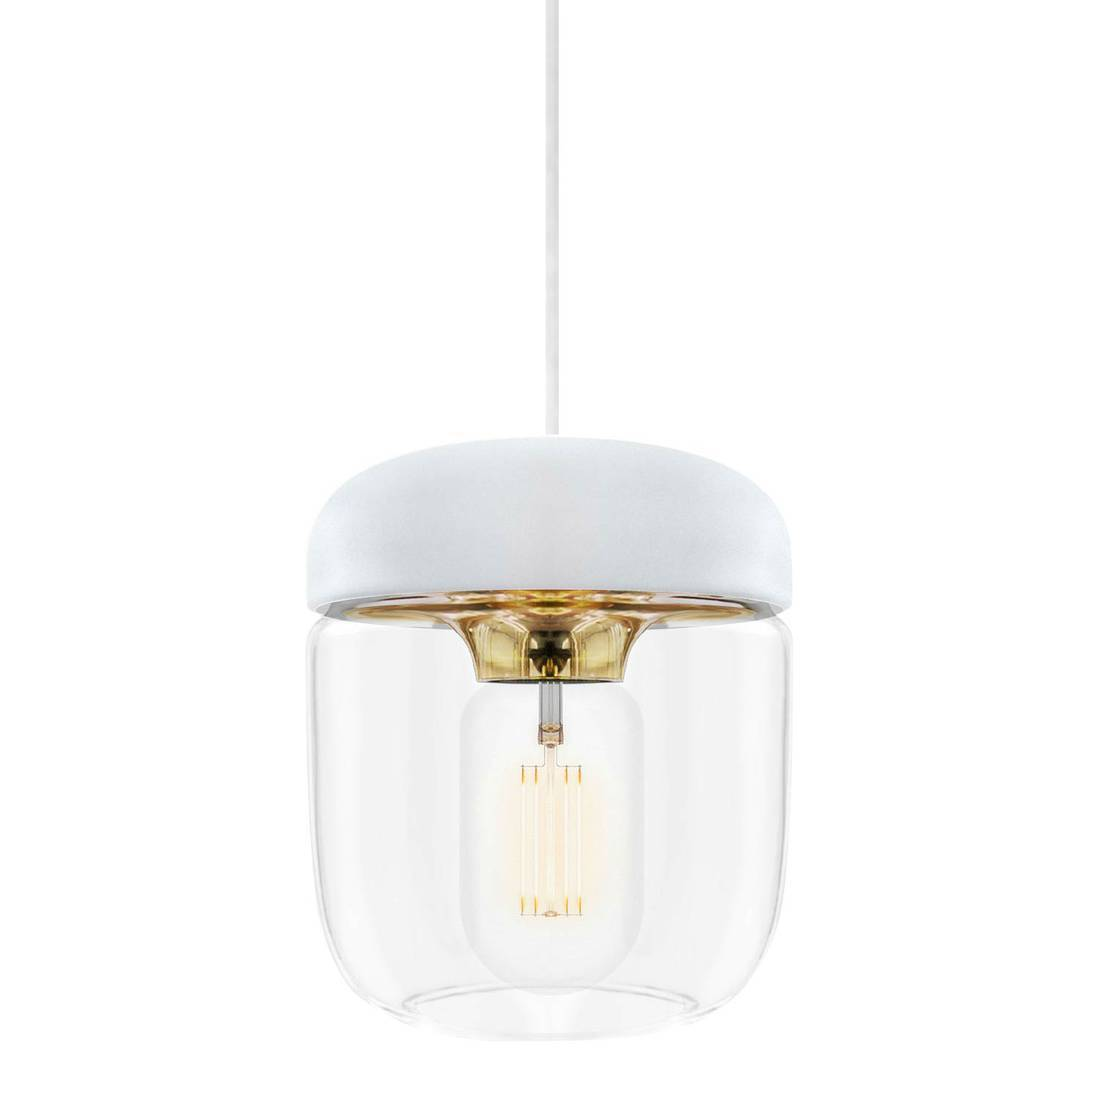 http://www.turbulences-deco.fr/wp-content/uploads/2017/11/lightonline_vita-acorn-suspension-blanc-laiton-h16cm-cable-blanc-2-1m.jpg